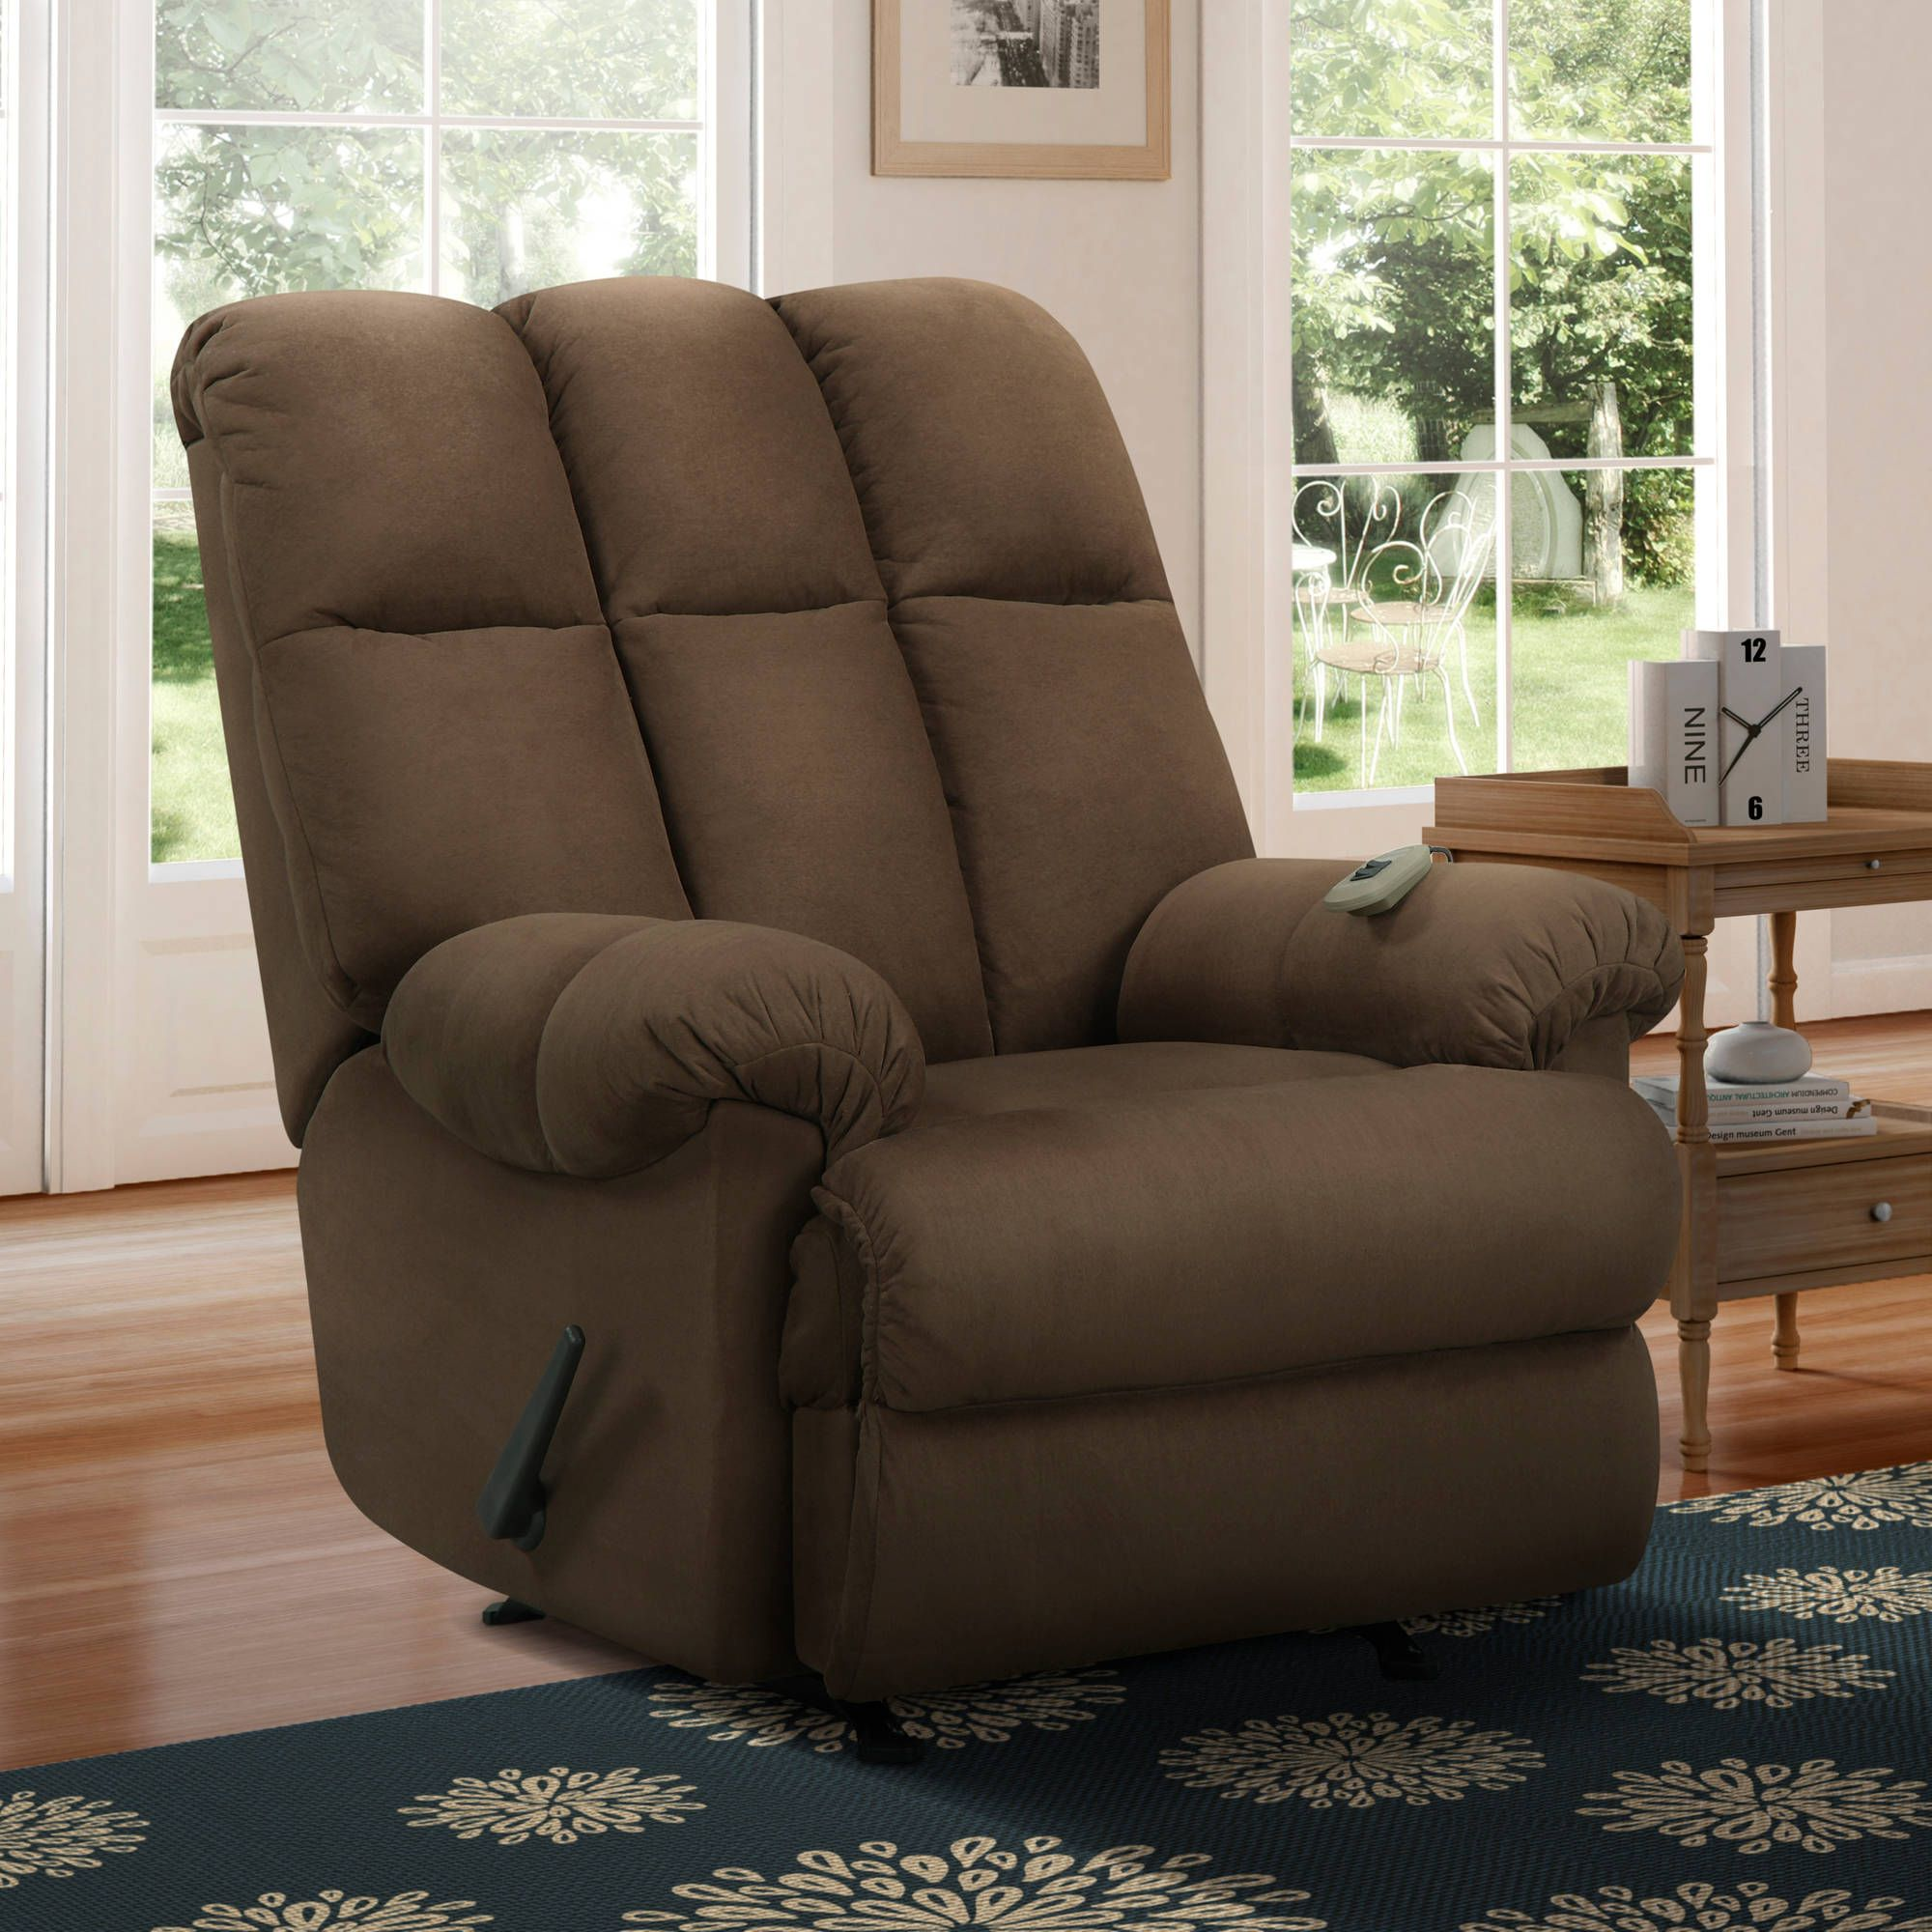 47050bd9bda5b4daf1a8bb42f6cdfbb5 - Better Homes & Gardens Deluxe Rocking Recliner Brown